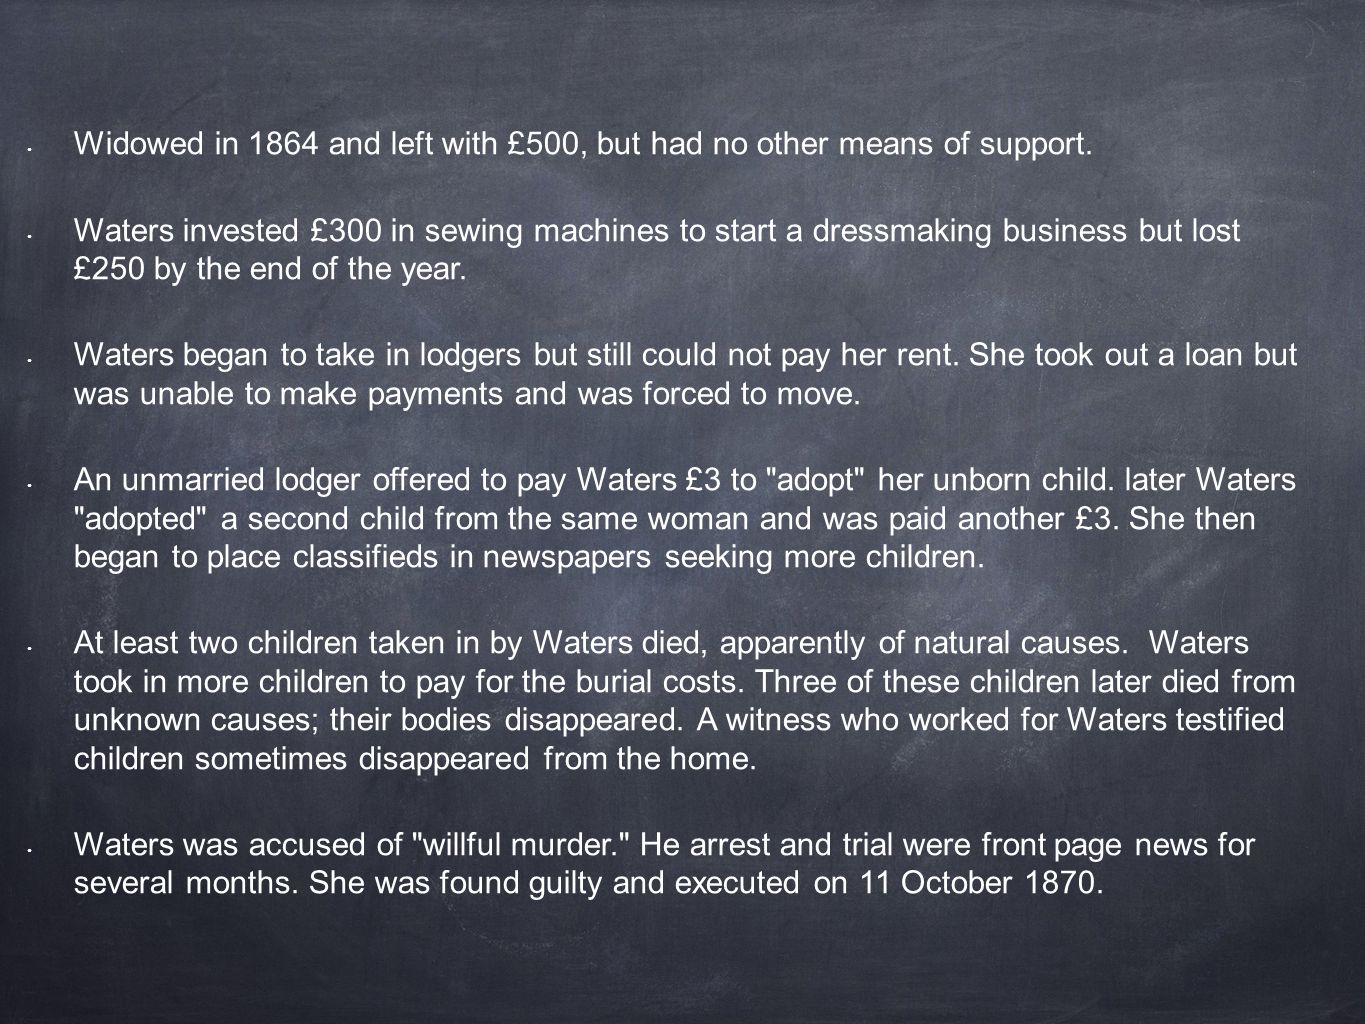 Widowed in 1864 and left with £500, but had no other means of support.